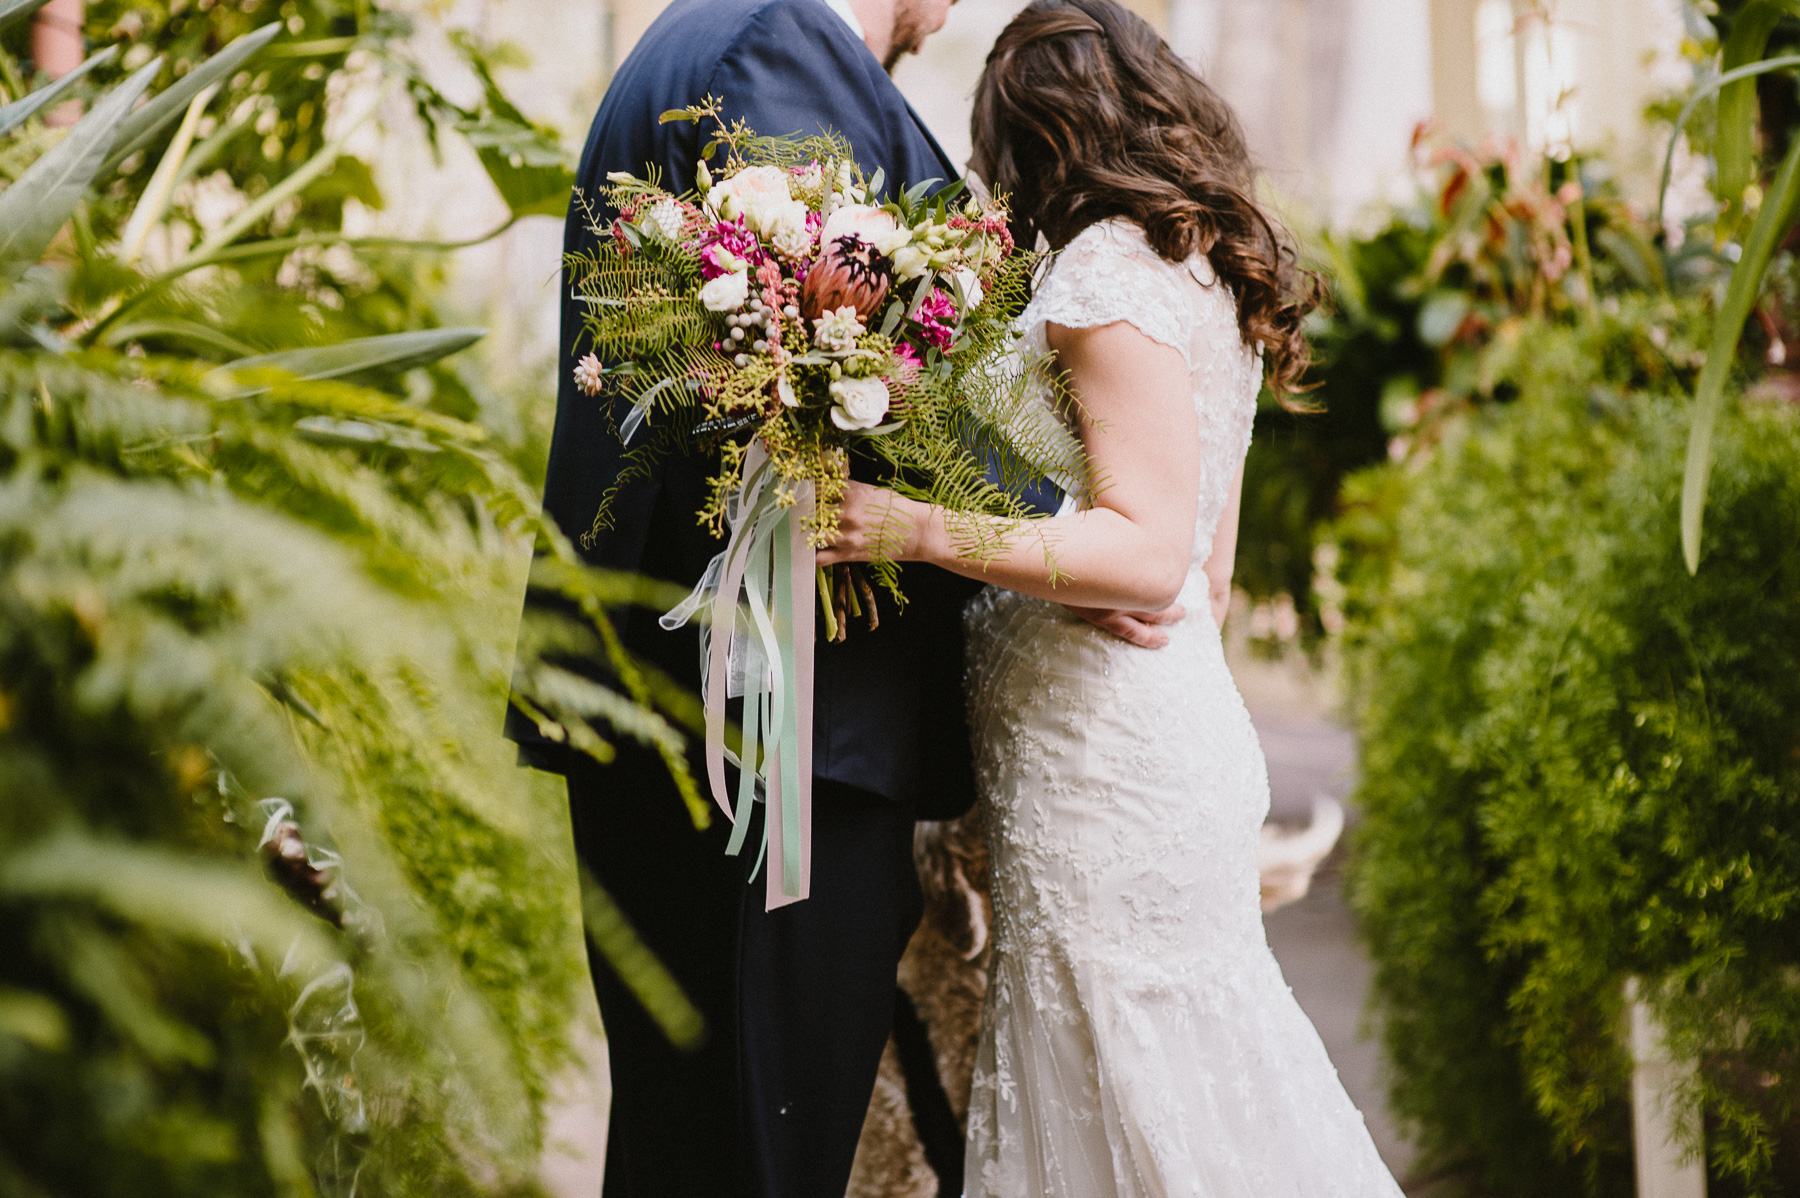 The_Carriage_House_at_Rockwood_Park_wedding_photo039.jpg